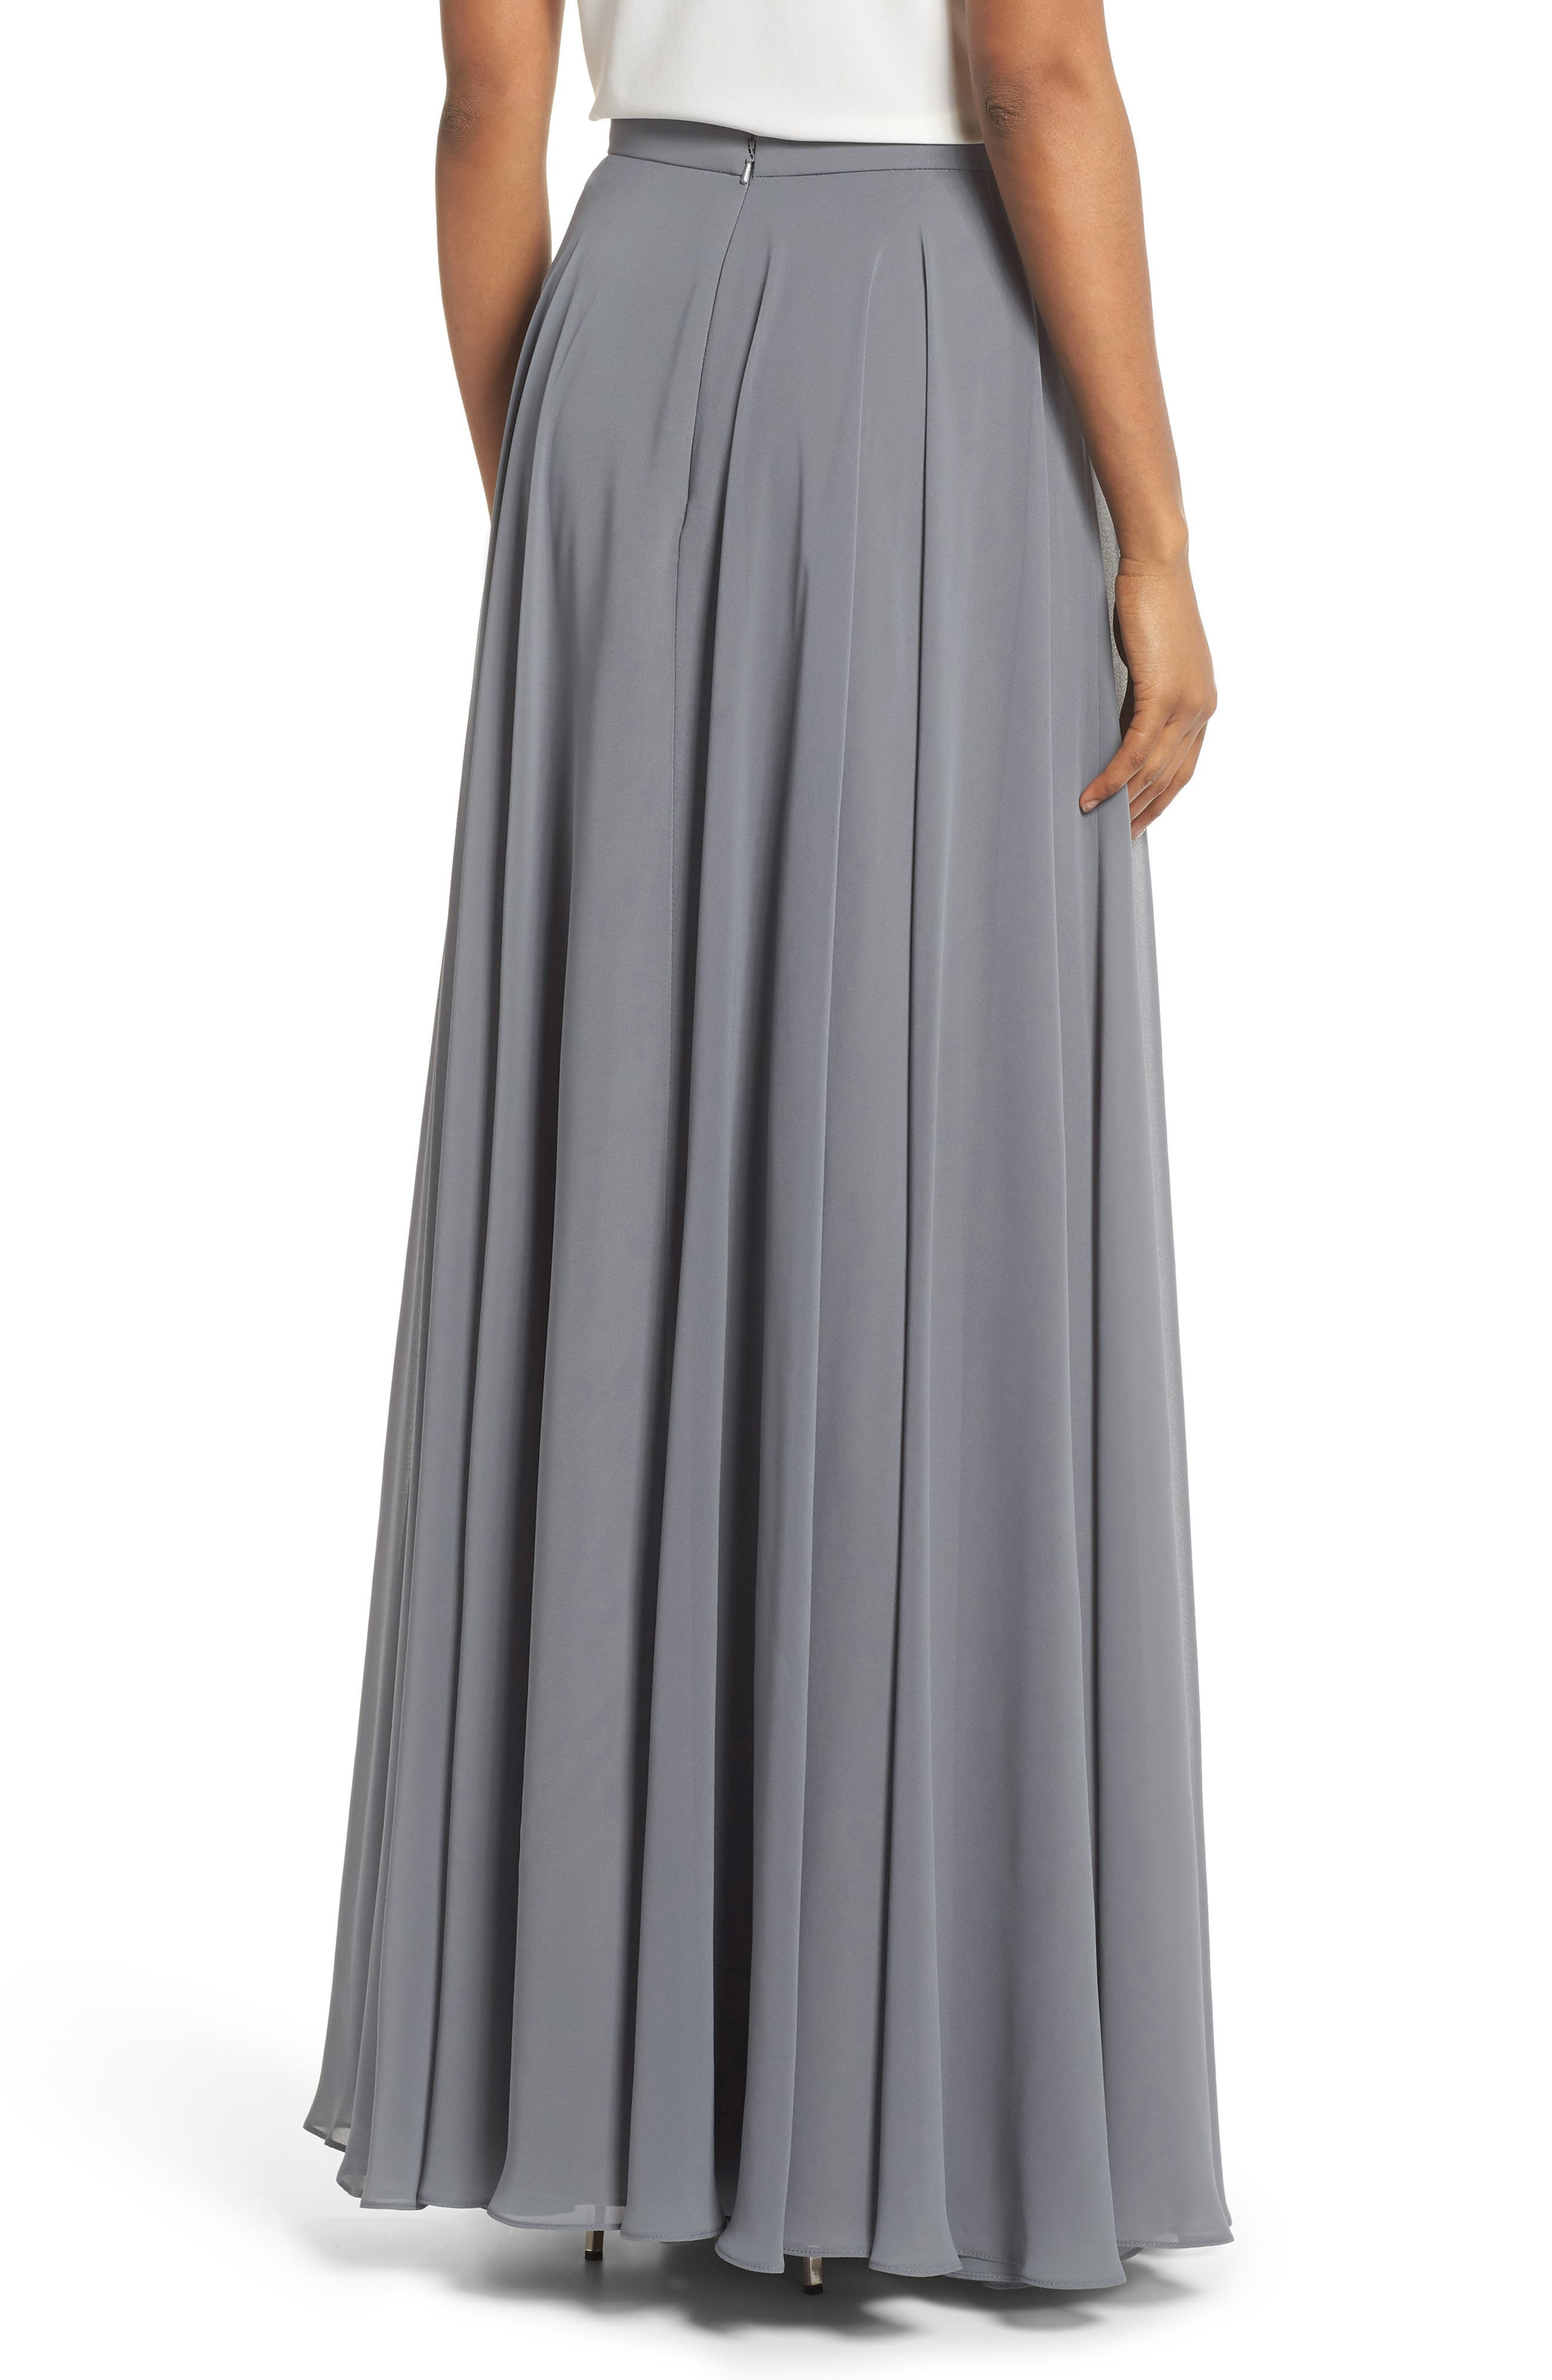 Hampton Long A-Line Chiffon Skirt,                             Alternate thumbnail 2, color,                             DENMARK BLUE